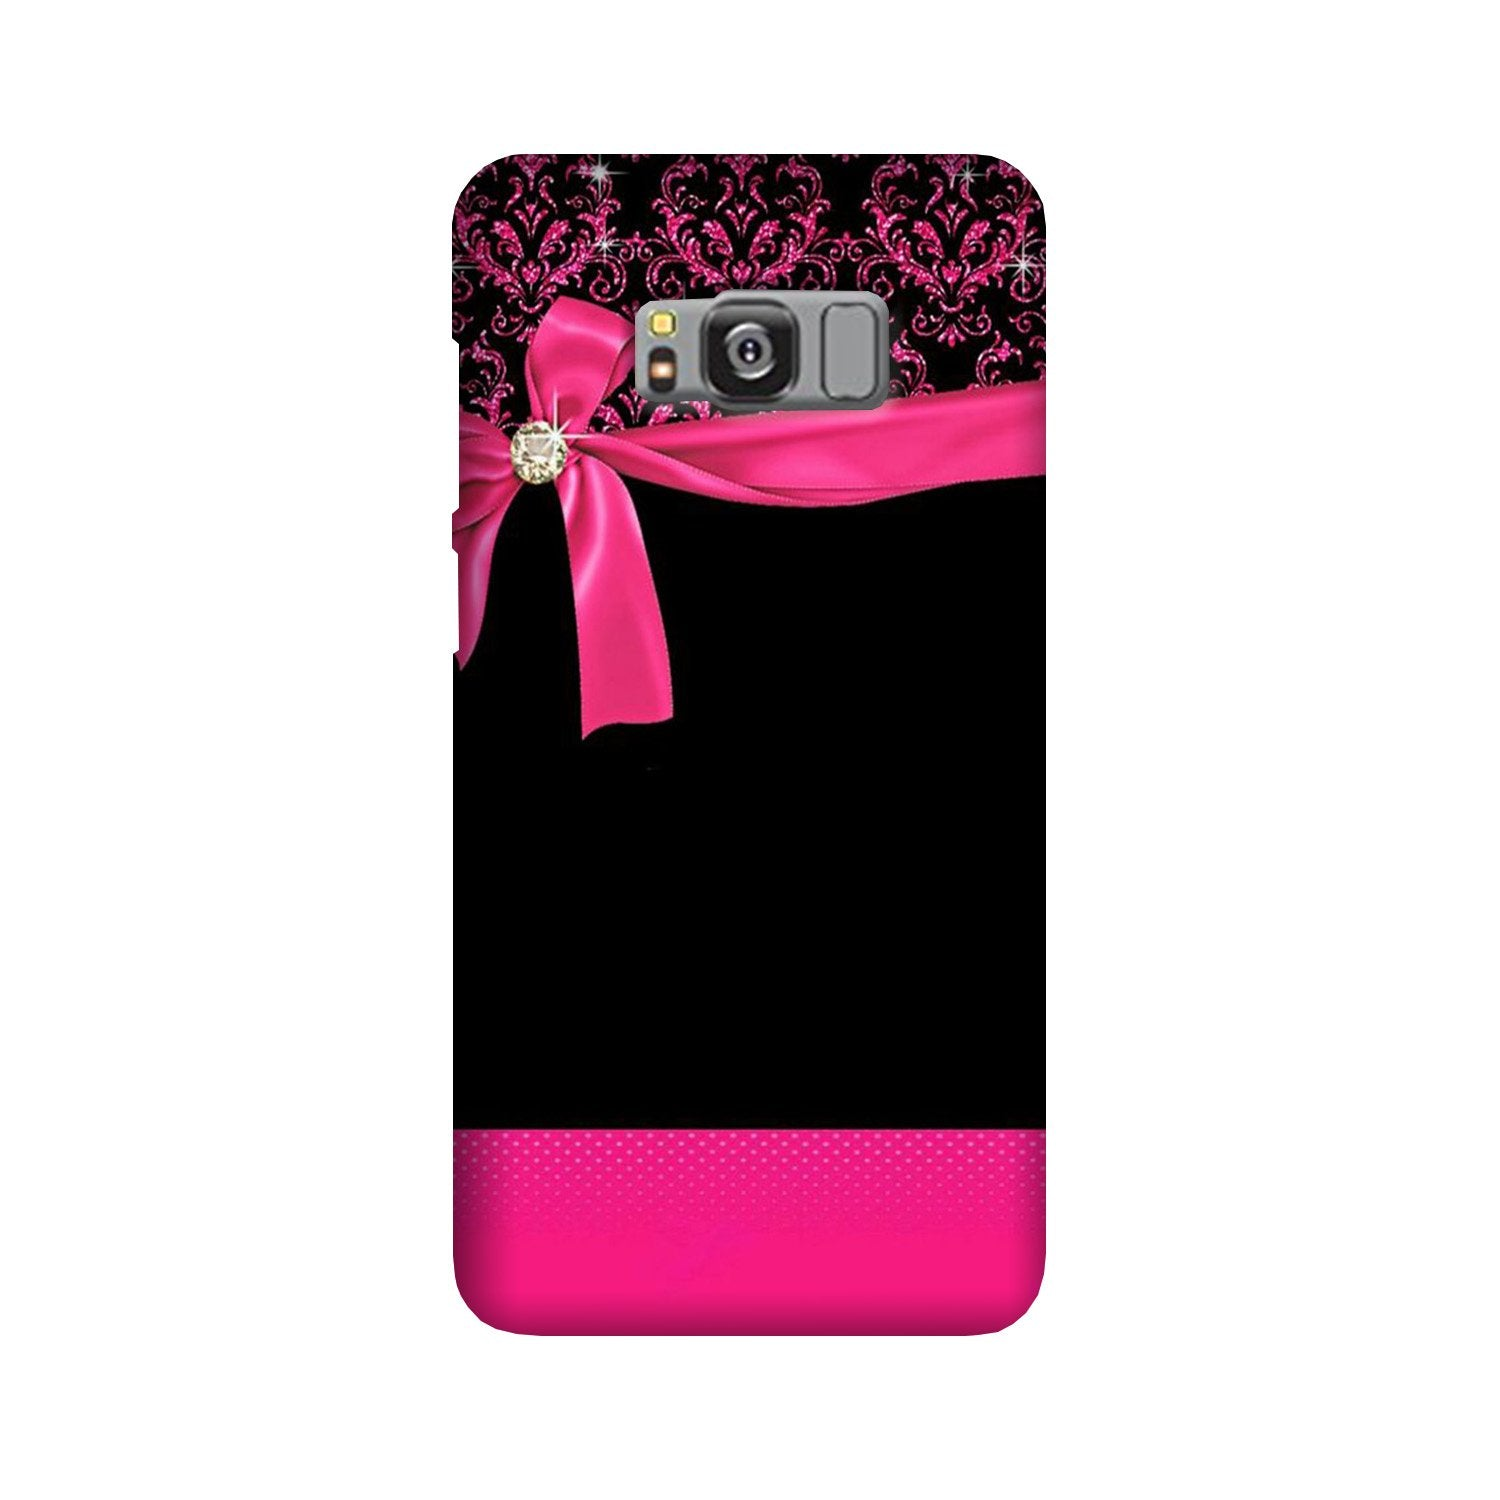 Gift Wrap4 Case for Galaxy S8 Plus